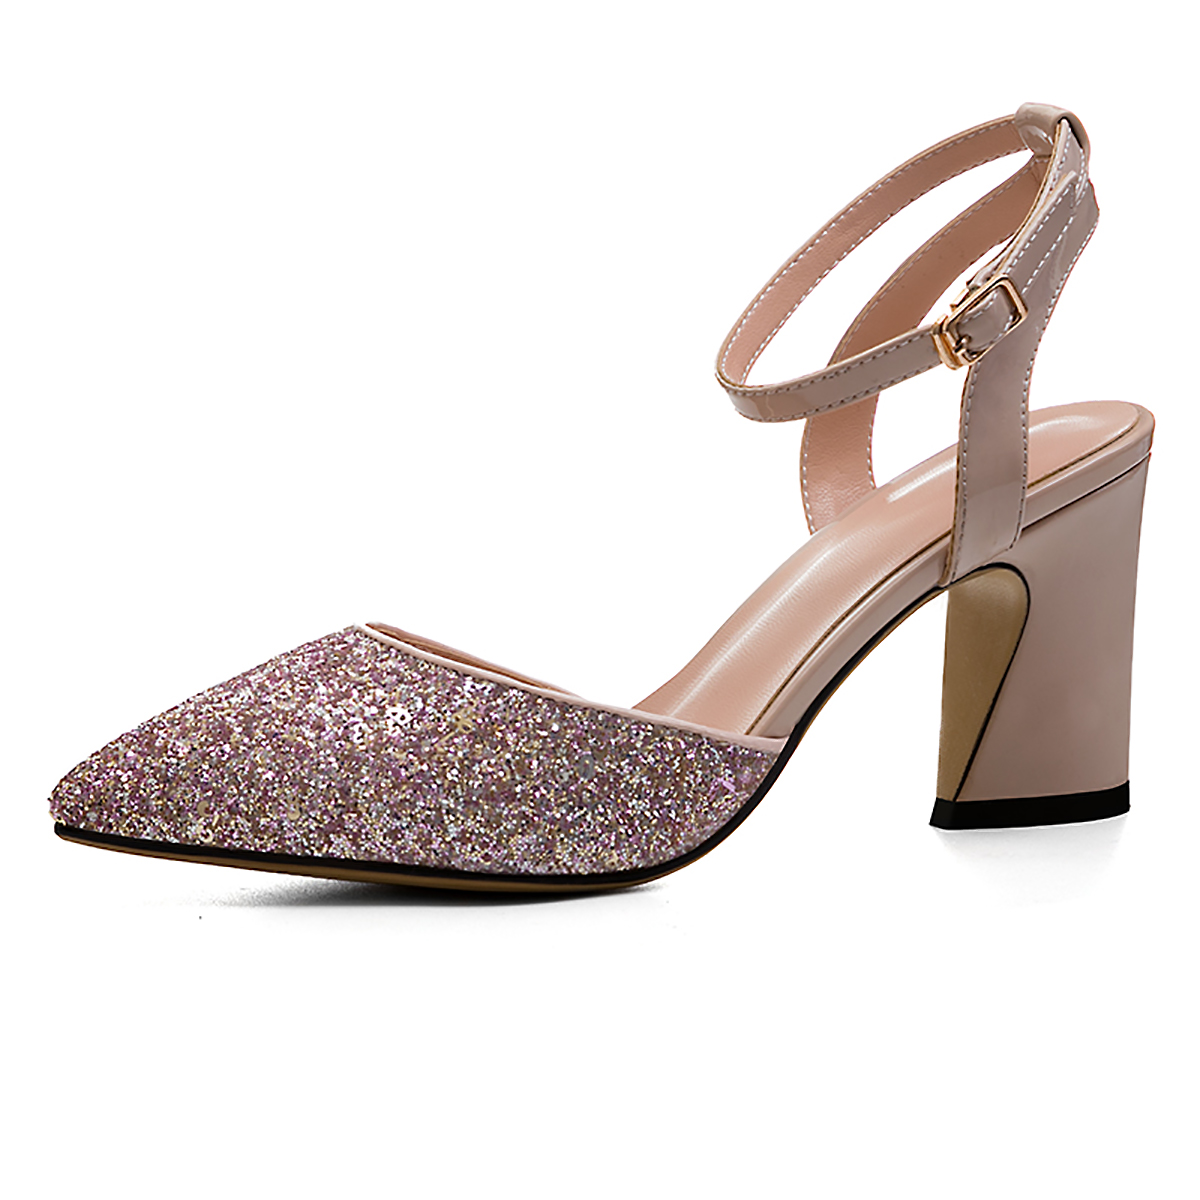 e4db873c392459 US  60 - Arden Furtado new 2018 summer high heels 8cm bling bling pointed  toe ankle strap fashion sequined sandals for woman party shoes -  www.ardenfurtado. ...